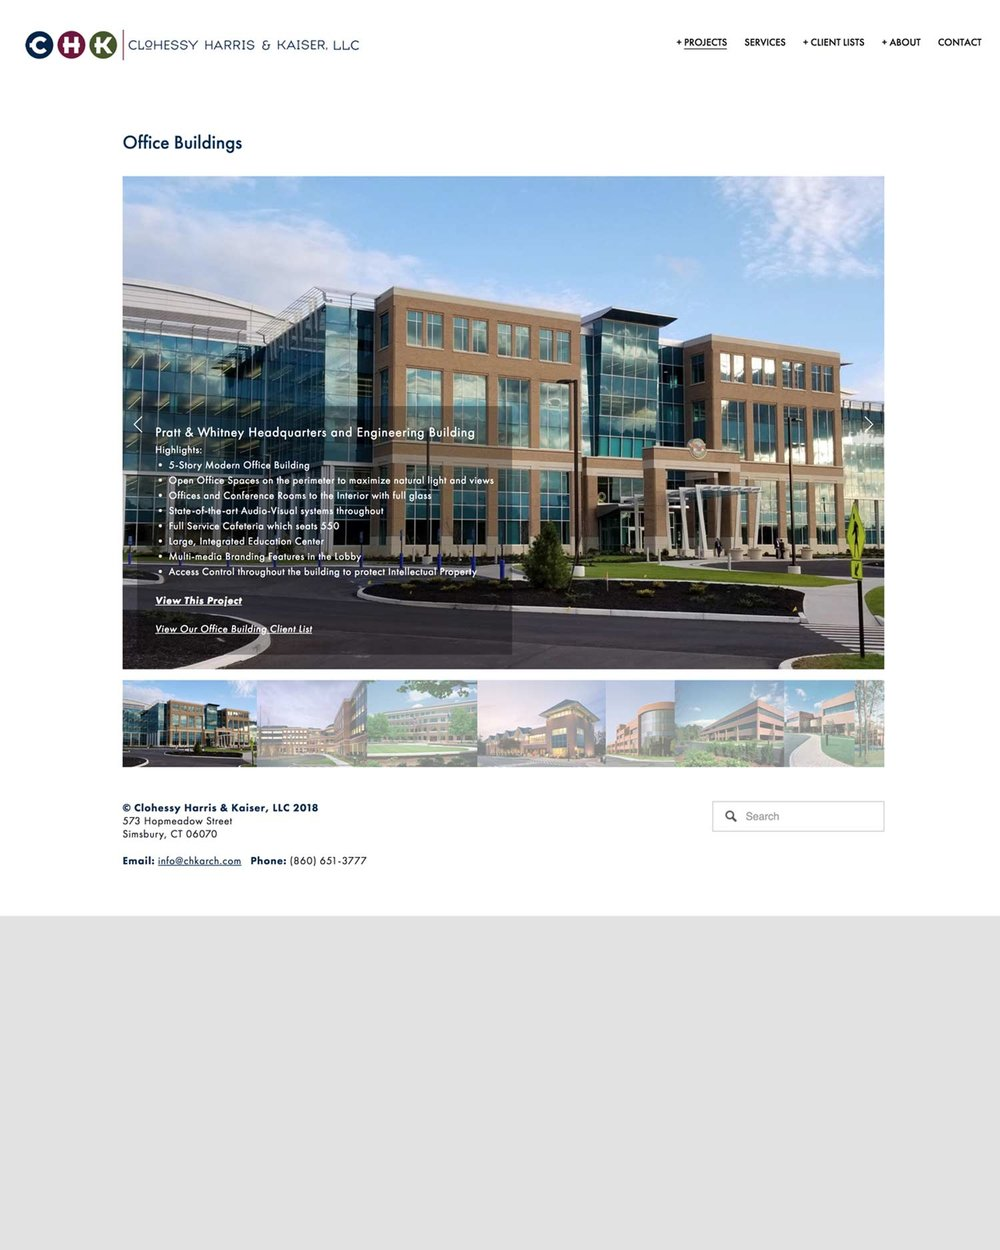 Clohessy, Kaiser & Harris - A Commercial Architectural Services Firm Known For Office Buildings